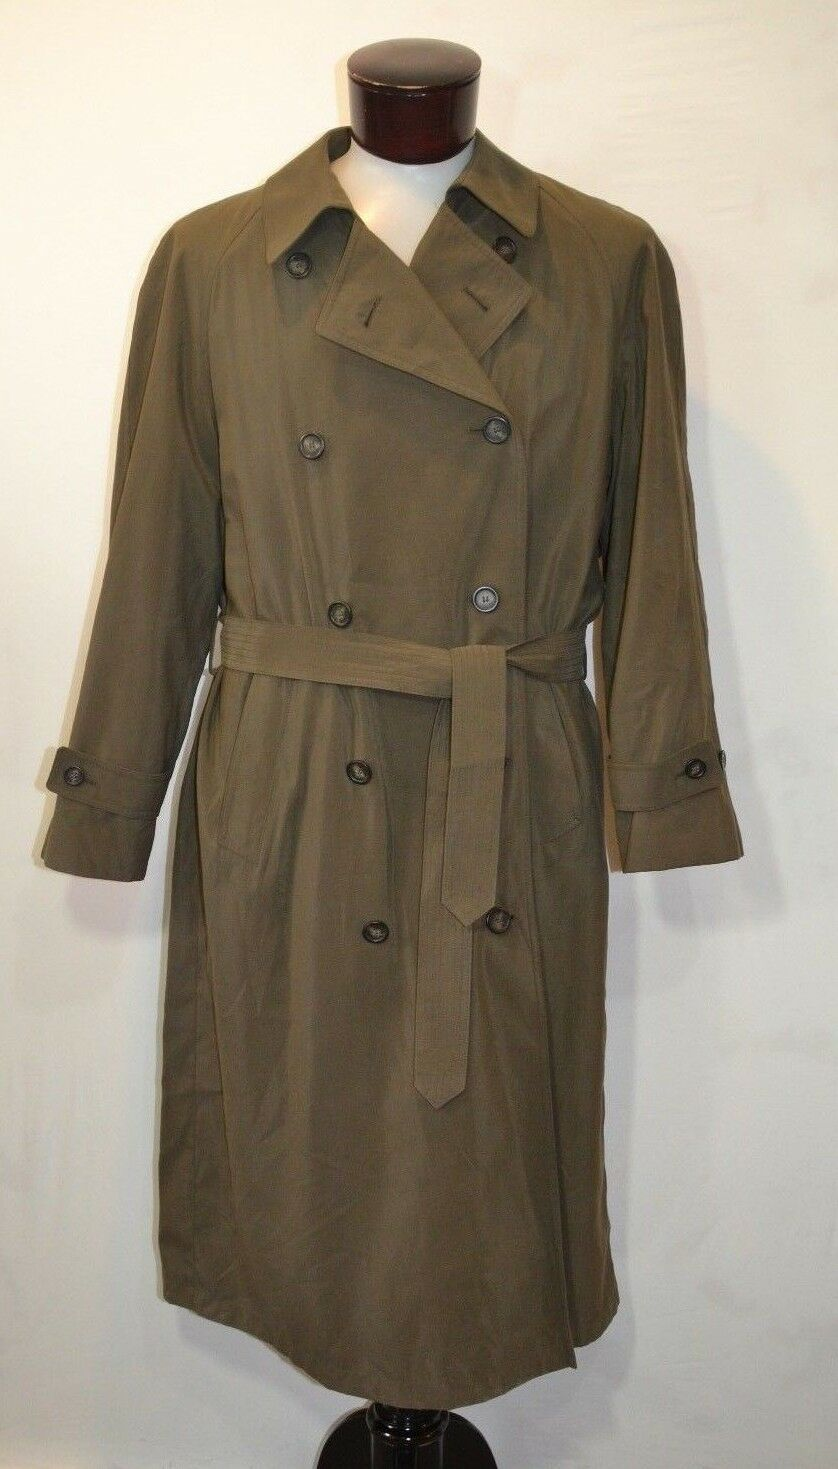 Ralph Lauren Chaps Trench Coat 42R Olive Grün Double Breasted Belted